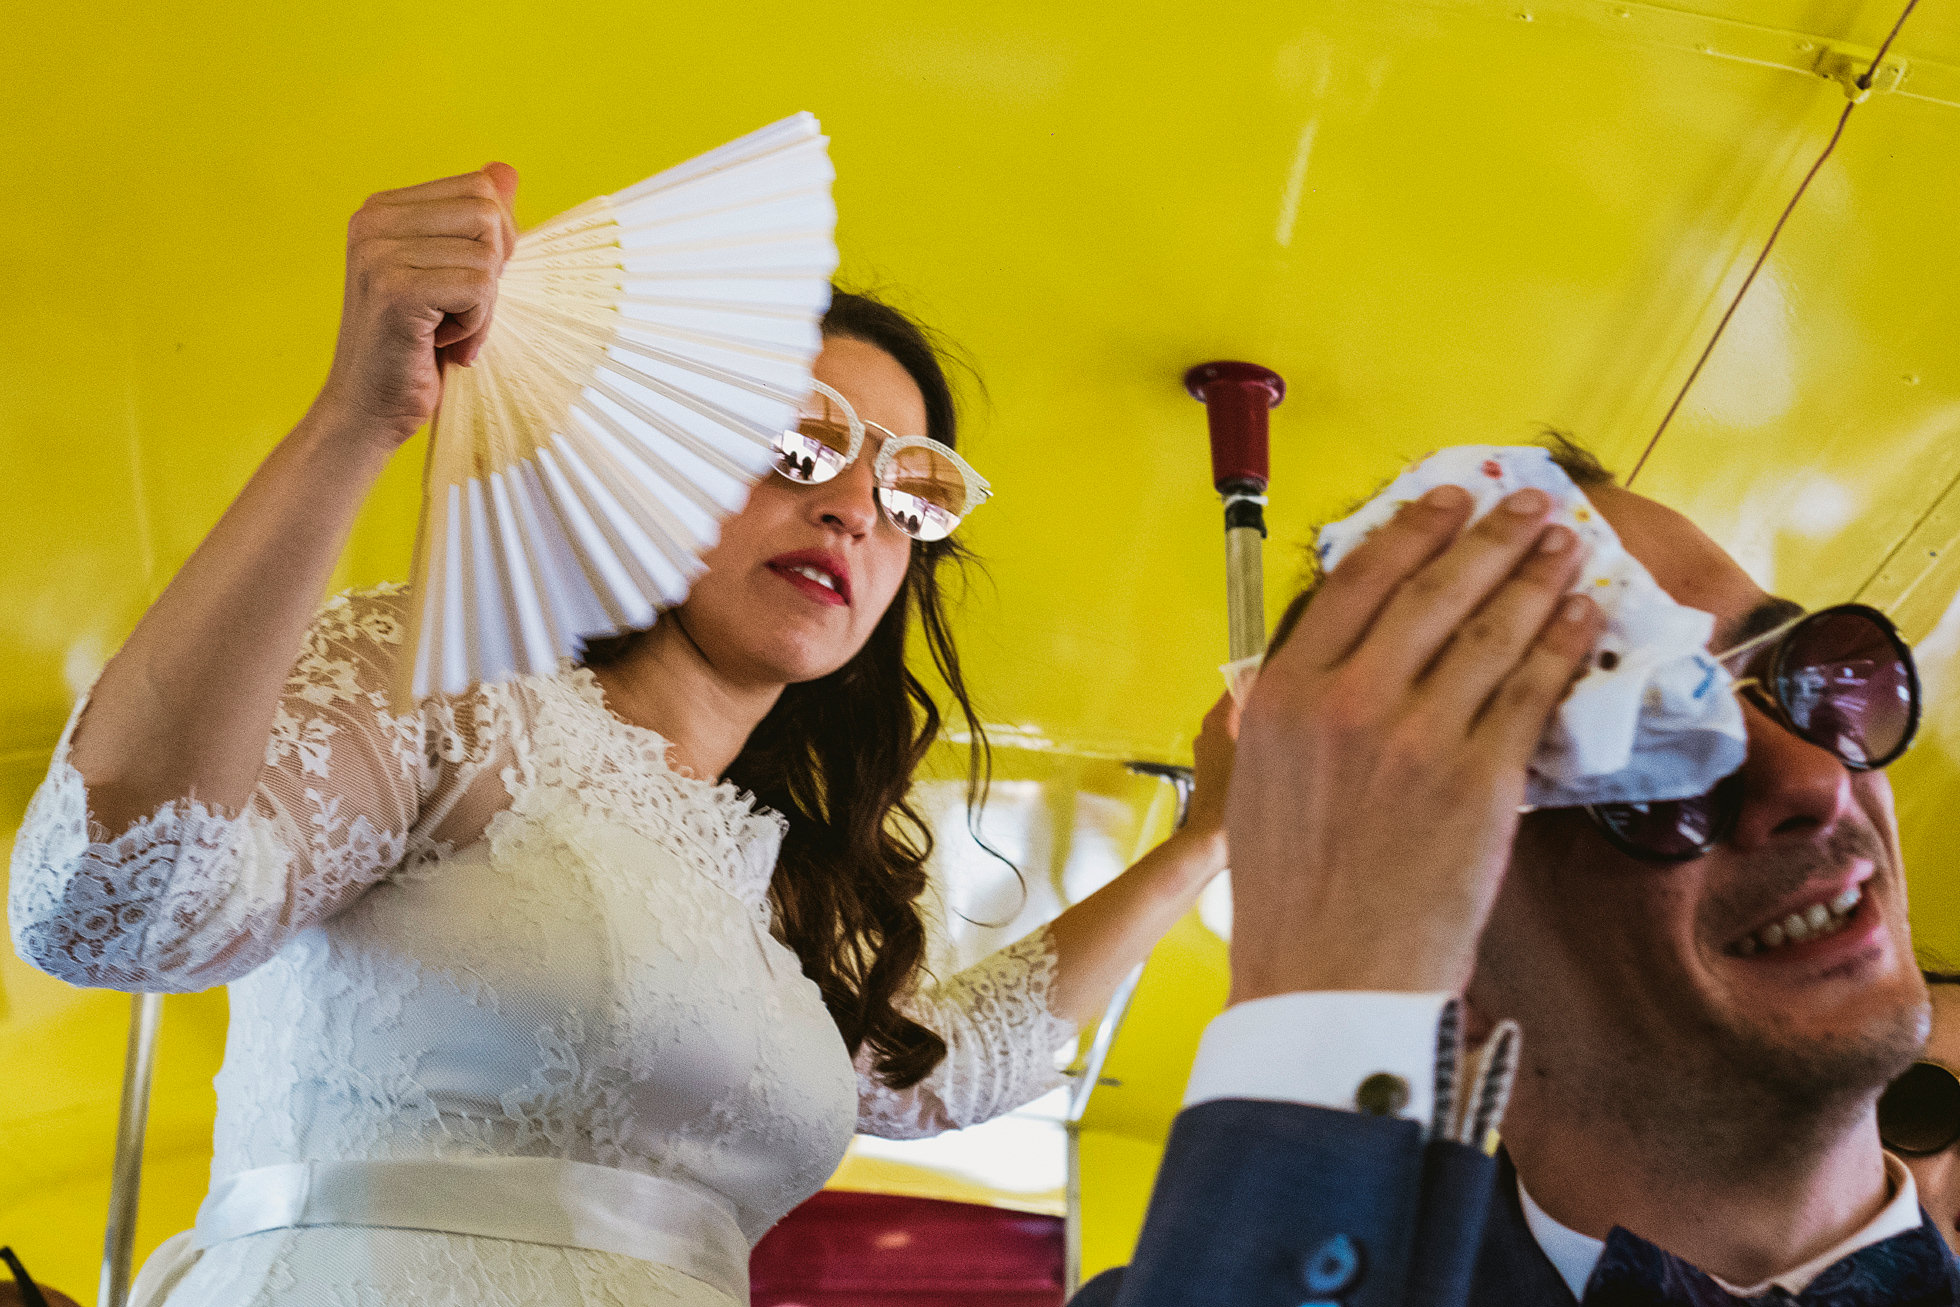 Paper fans at weddings